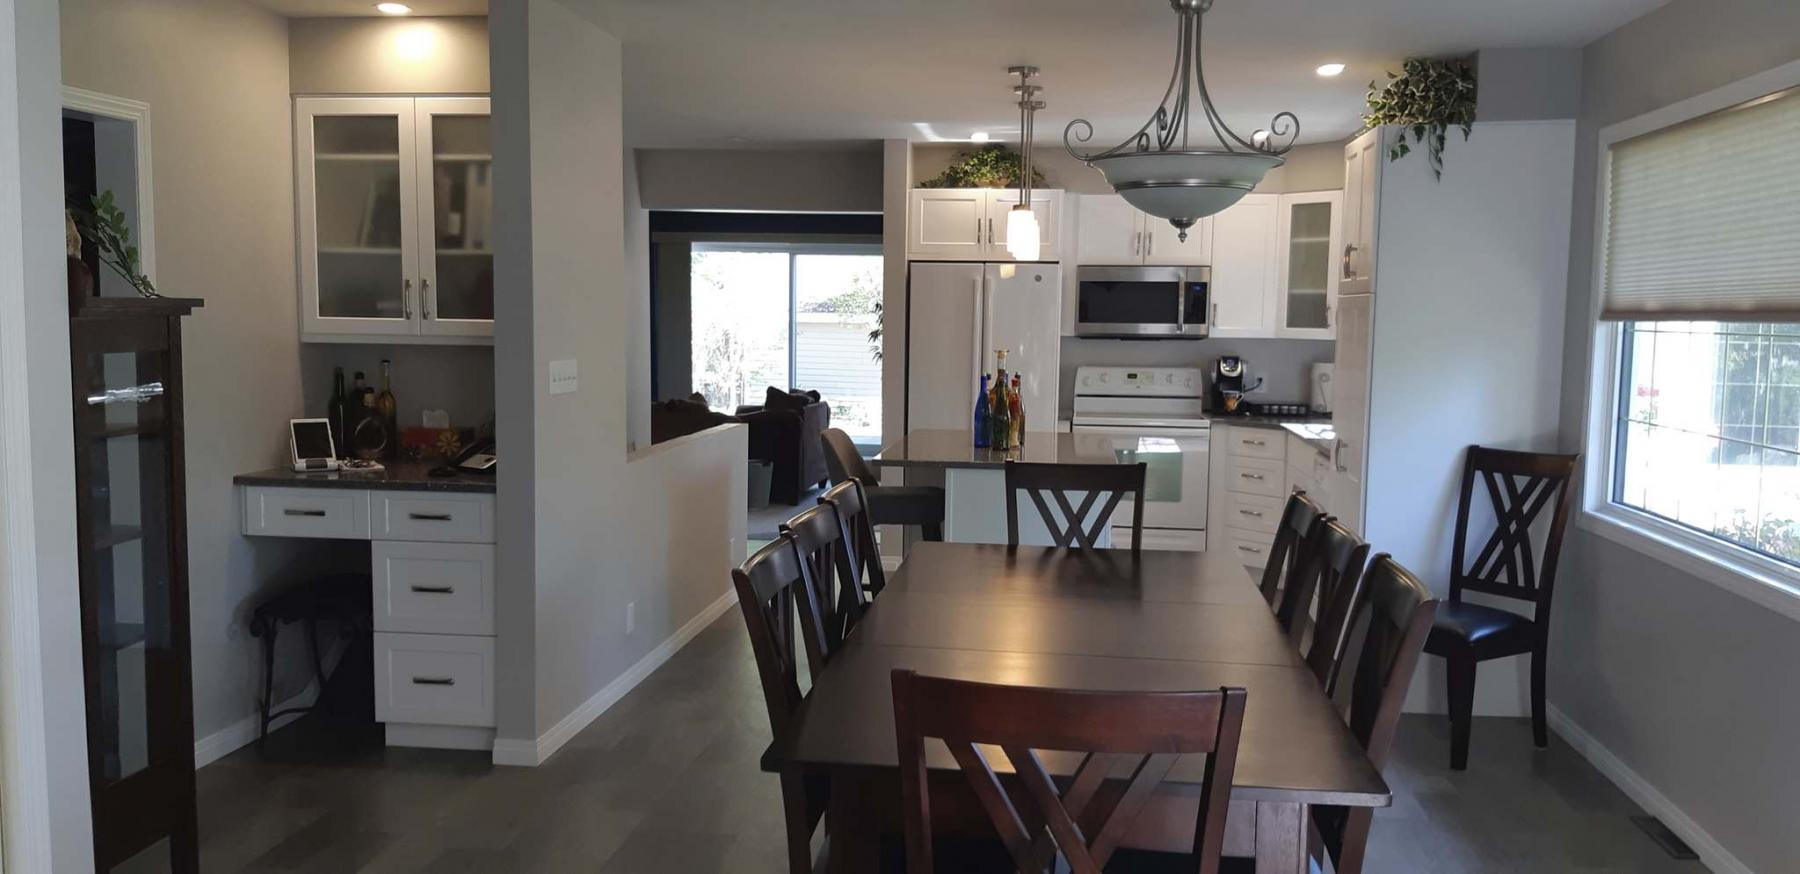 <p>Supplied photos </p><p>Despite a pandemic, the Kroekers were able to complete a spiffy kitchen renovation that really spruced things up — which is evident when compared to the previous kitchen. </p>